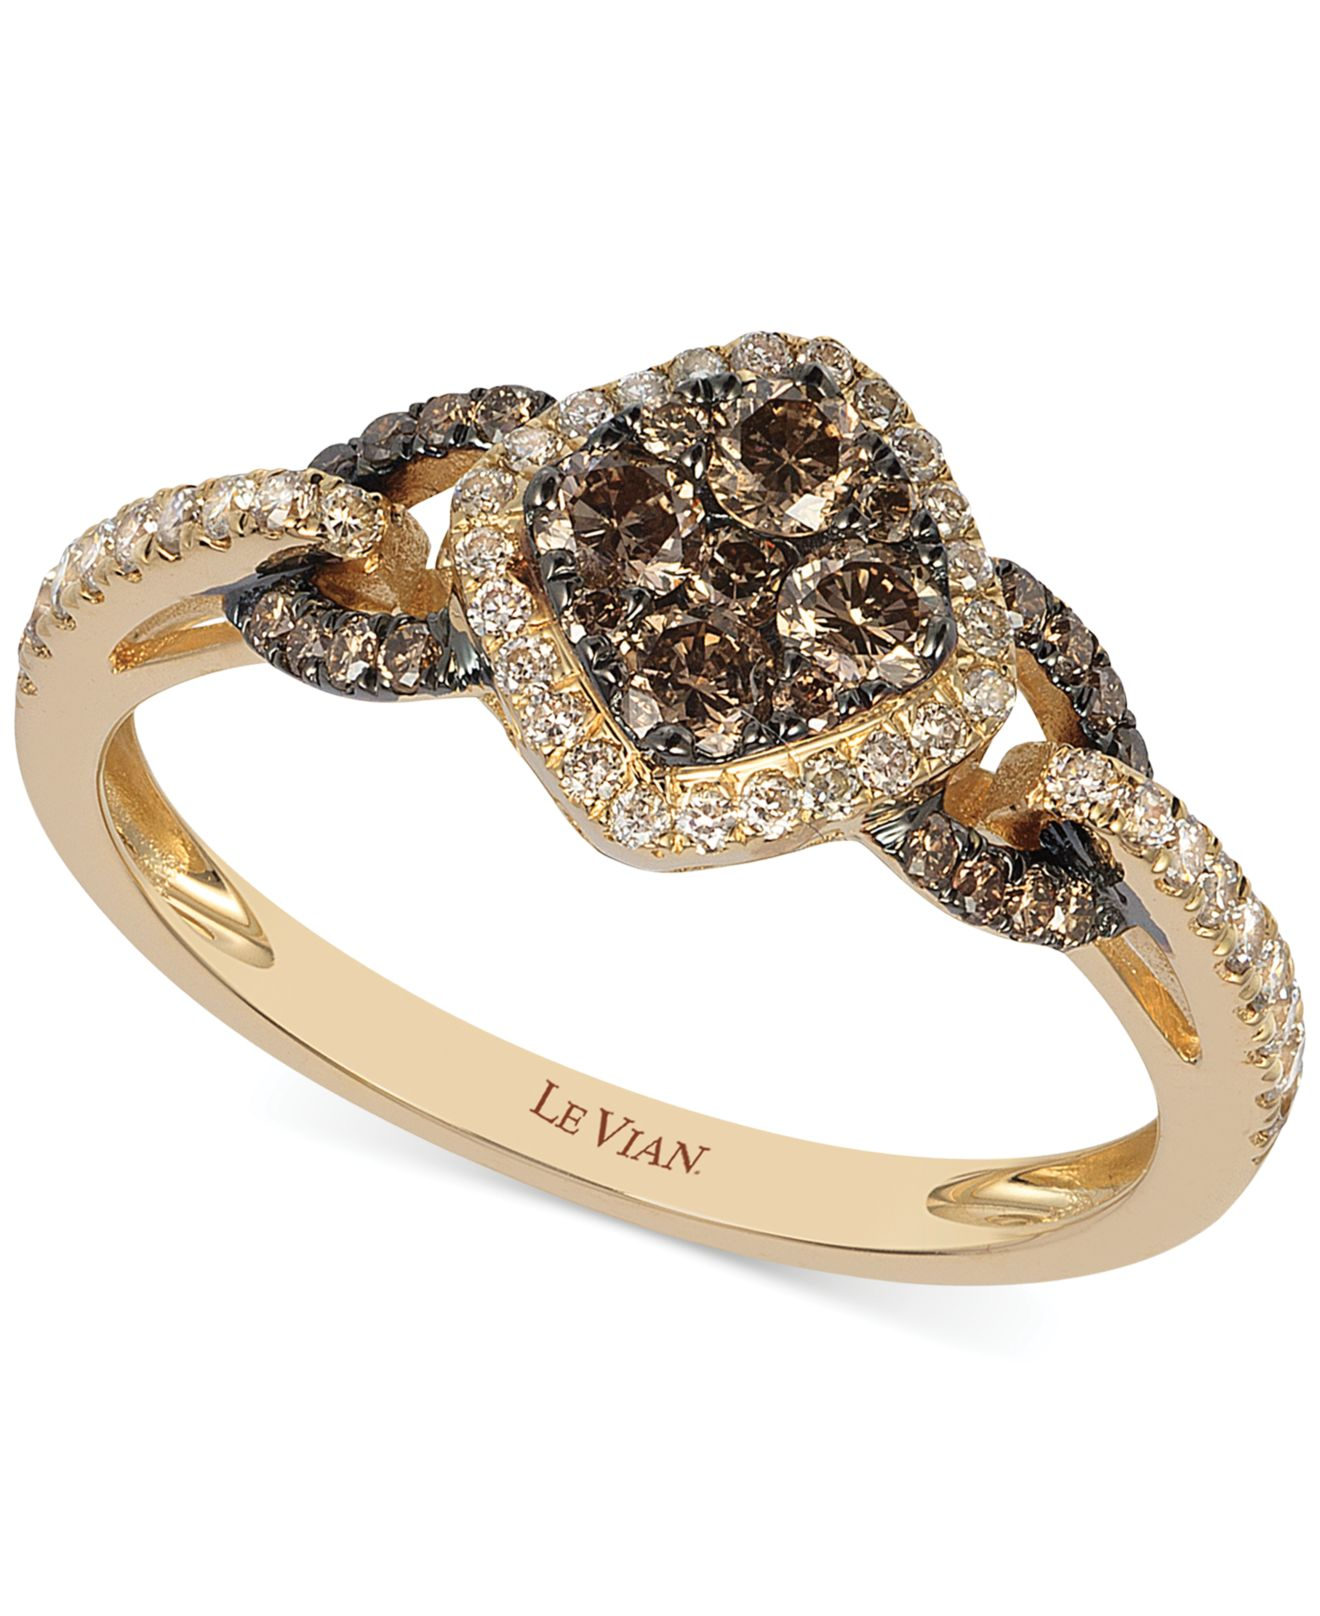 le vian chocolate and white diamond ring in 14k rose gold